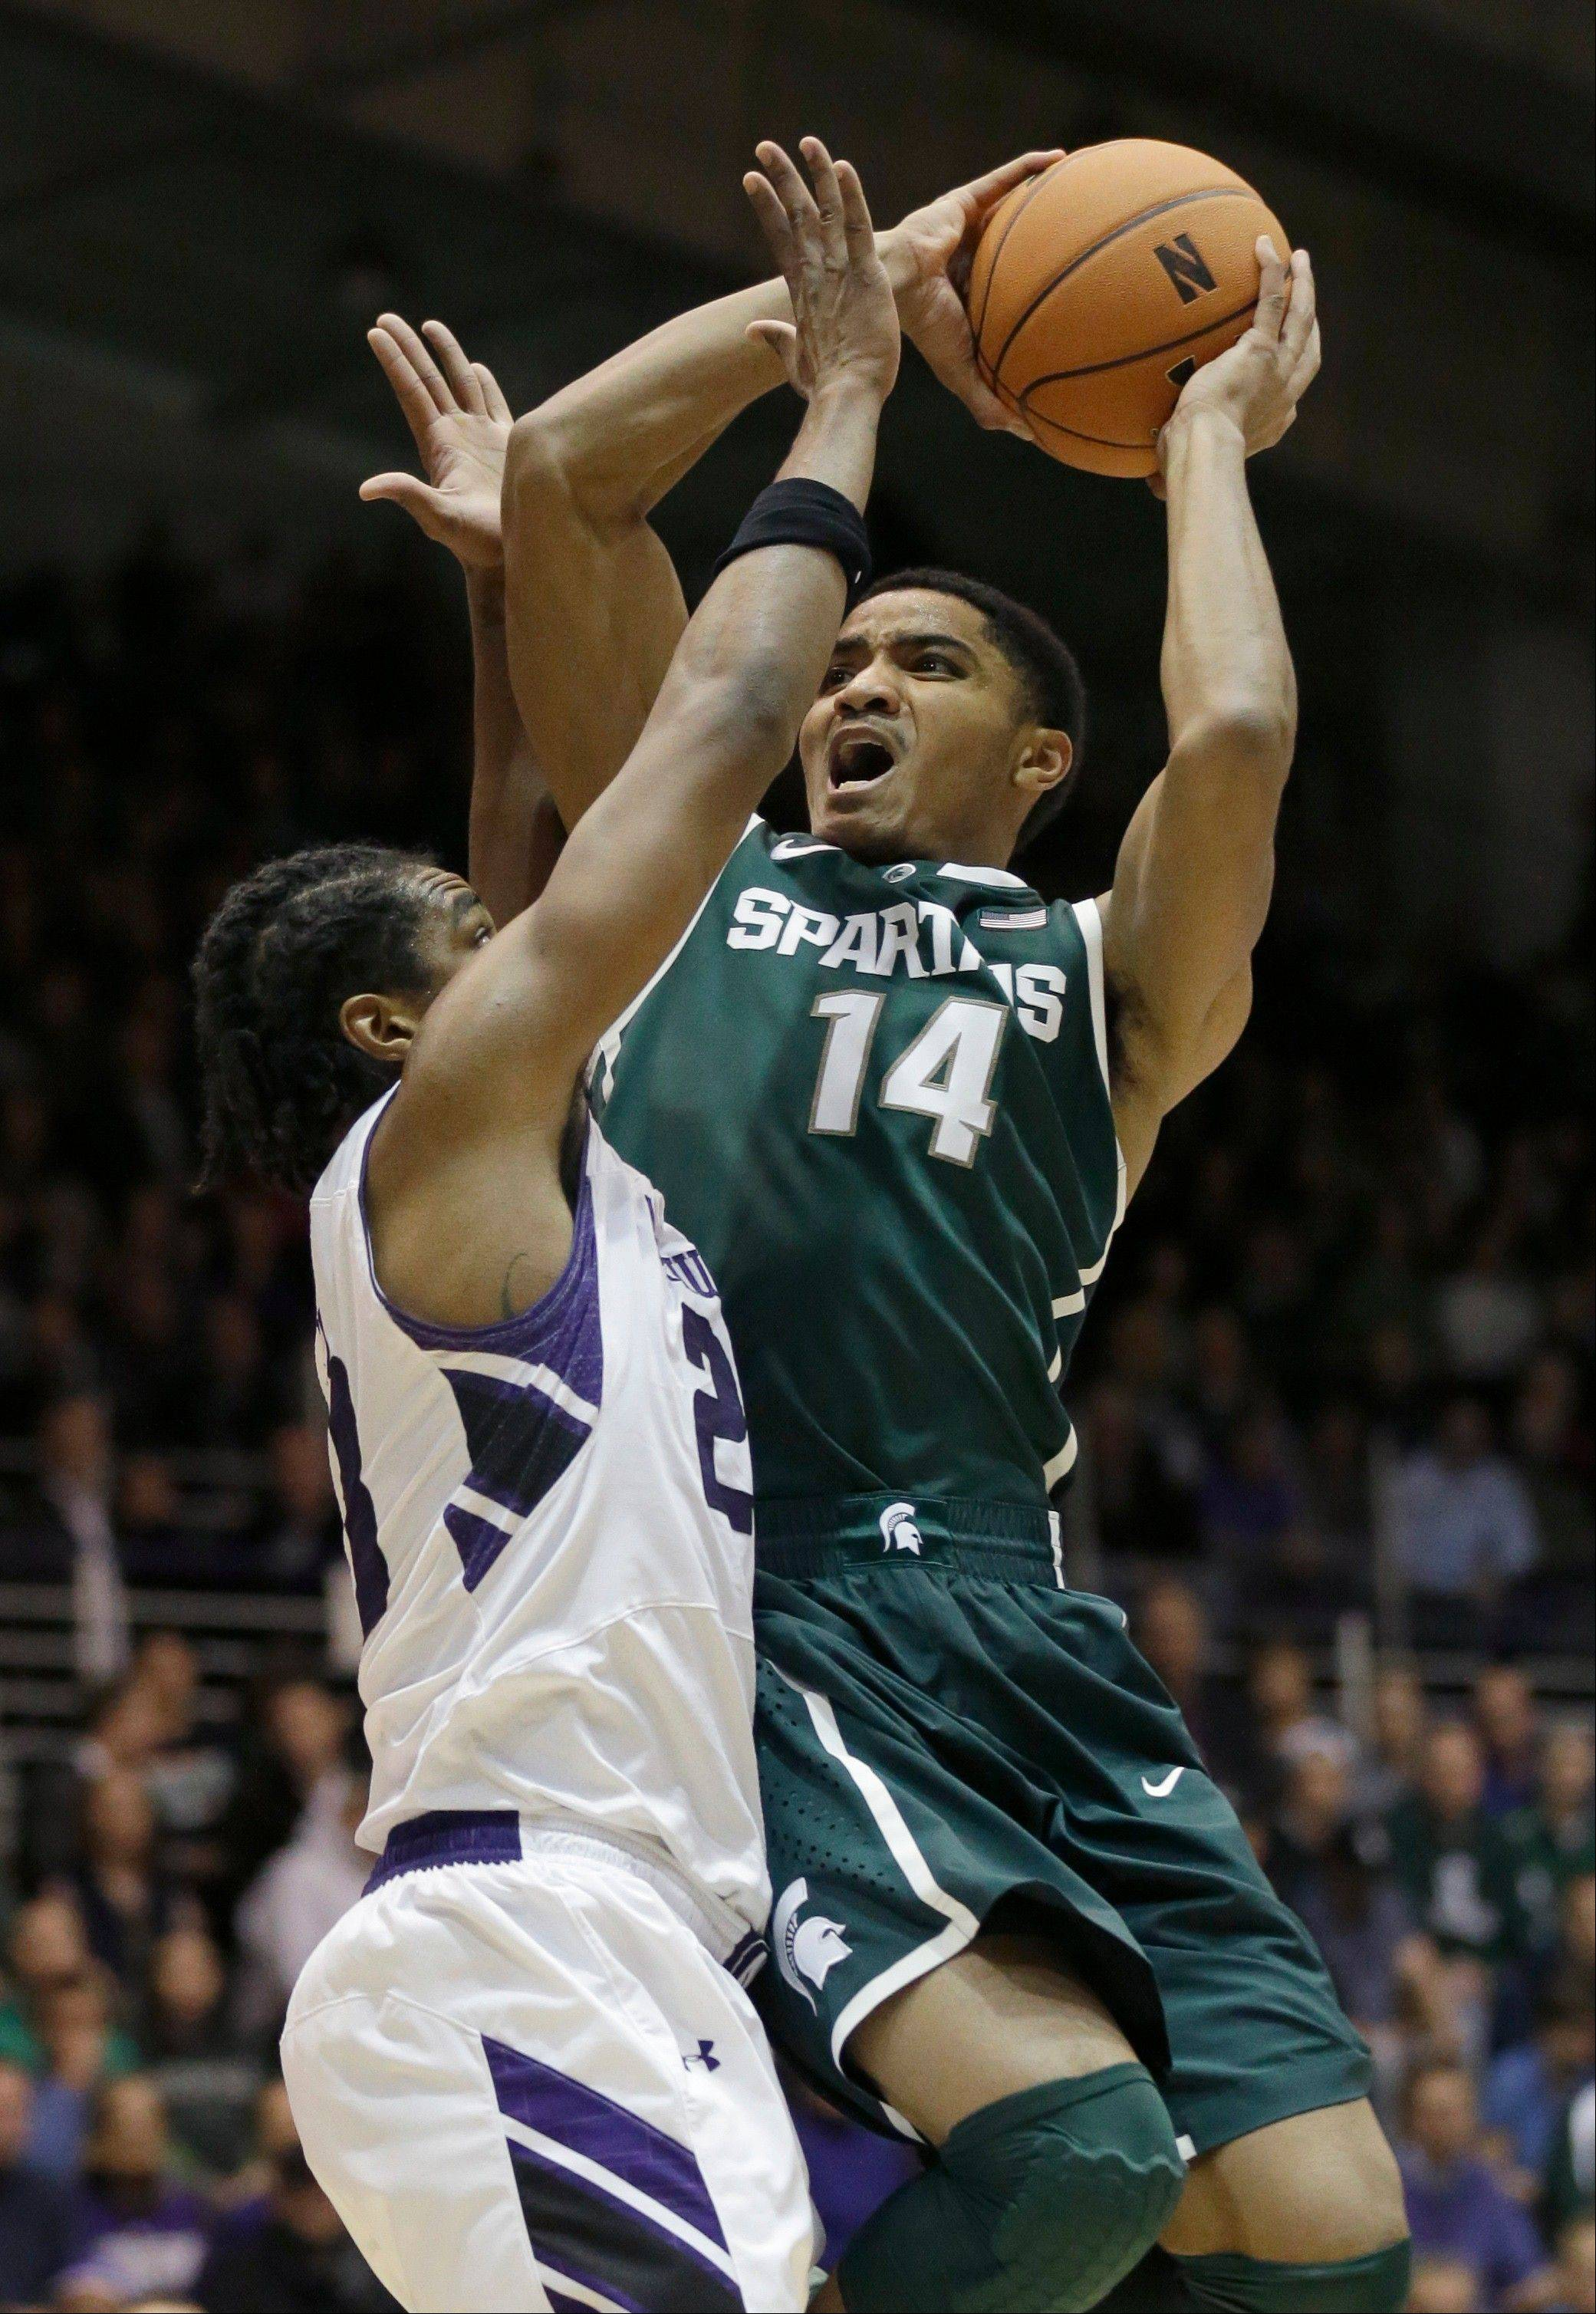 Michigan State guard Gary Harris, right, drives to the basket as Northwestern guard JerShon Cobb defends against him during the first half of an NCAA college basketball game Wednesday in Evanston.